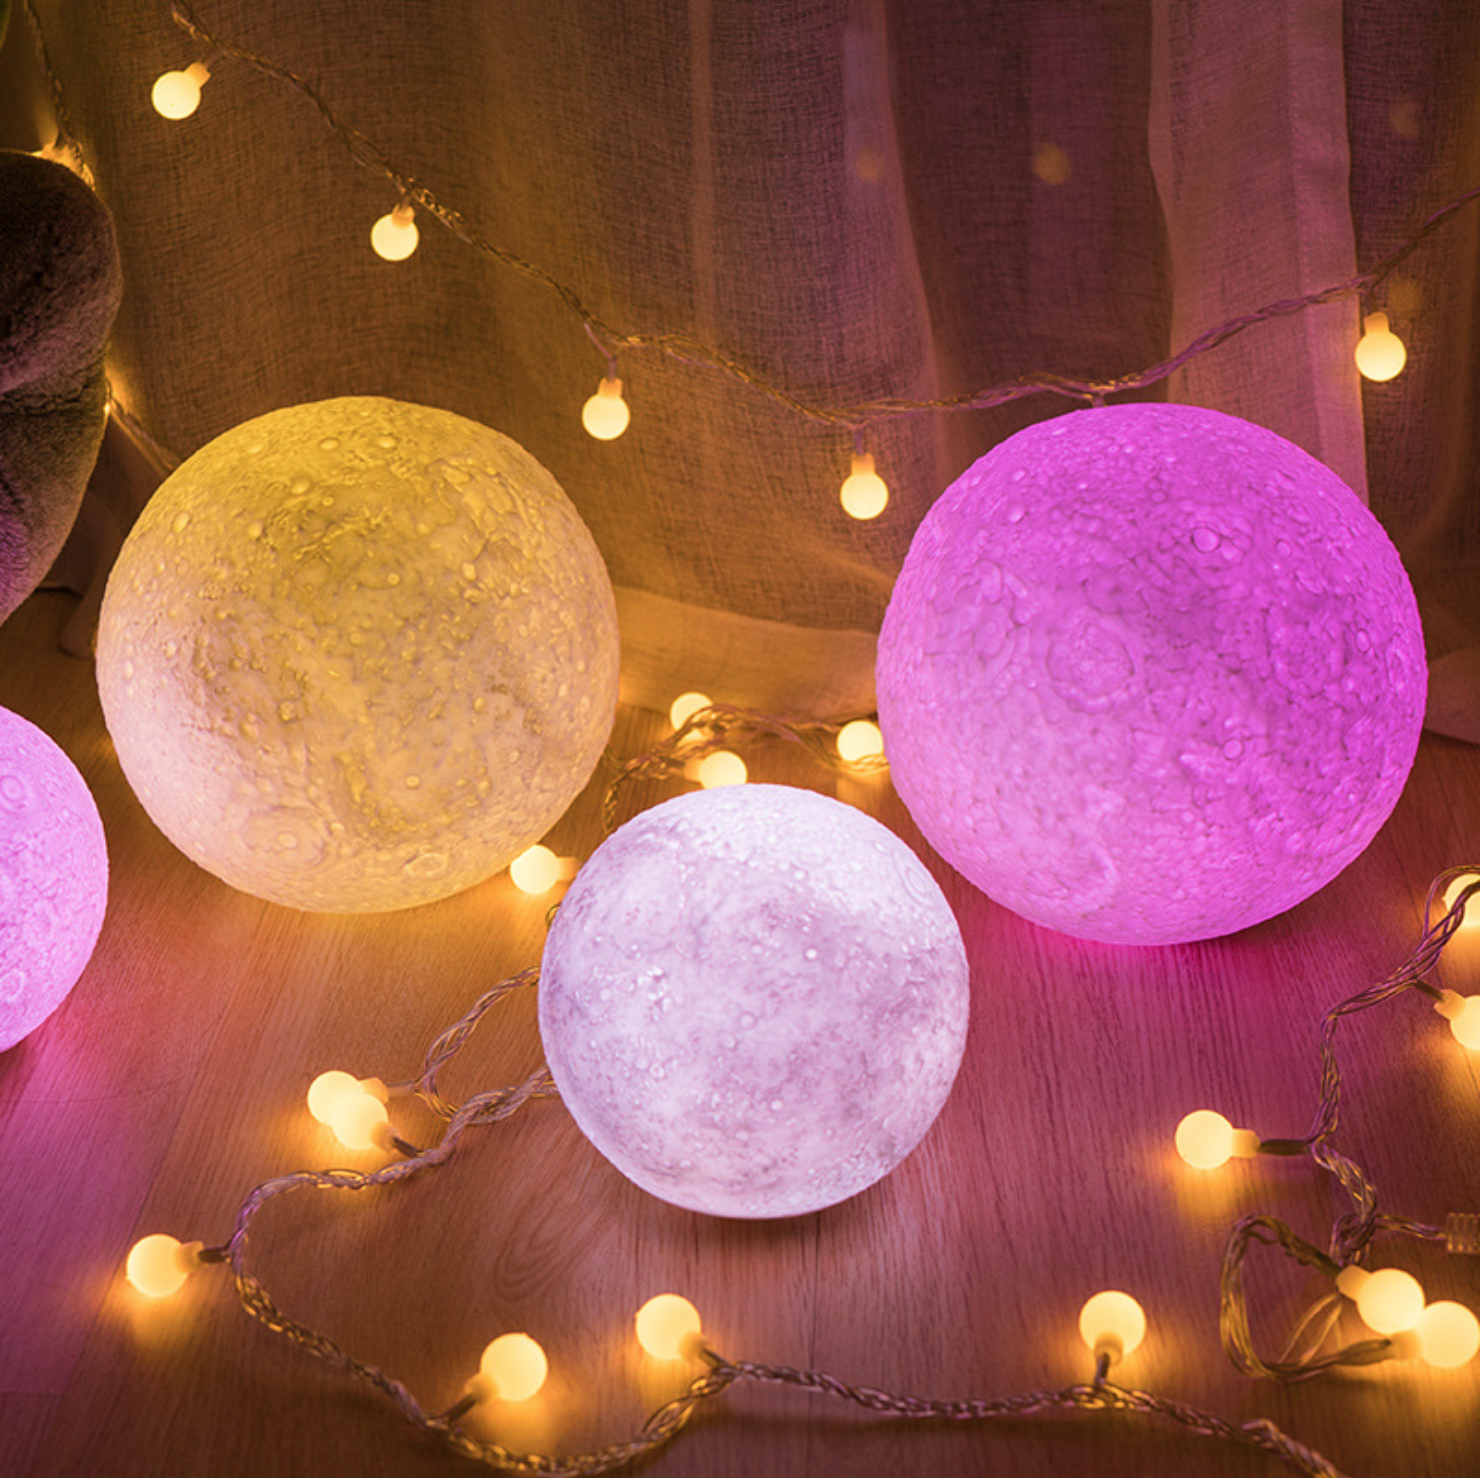 2018 Favorite Valentines Gifts Decorative Lights 3D Print LED 16 Colors RGB Moon Light with Remote&Touch Control and Adjustable